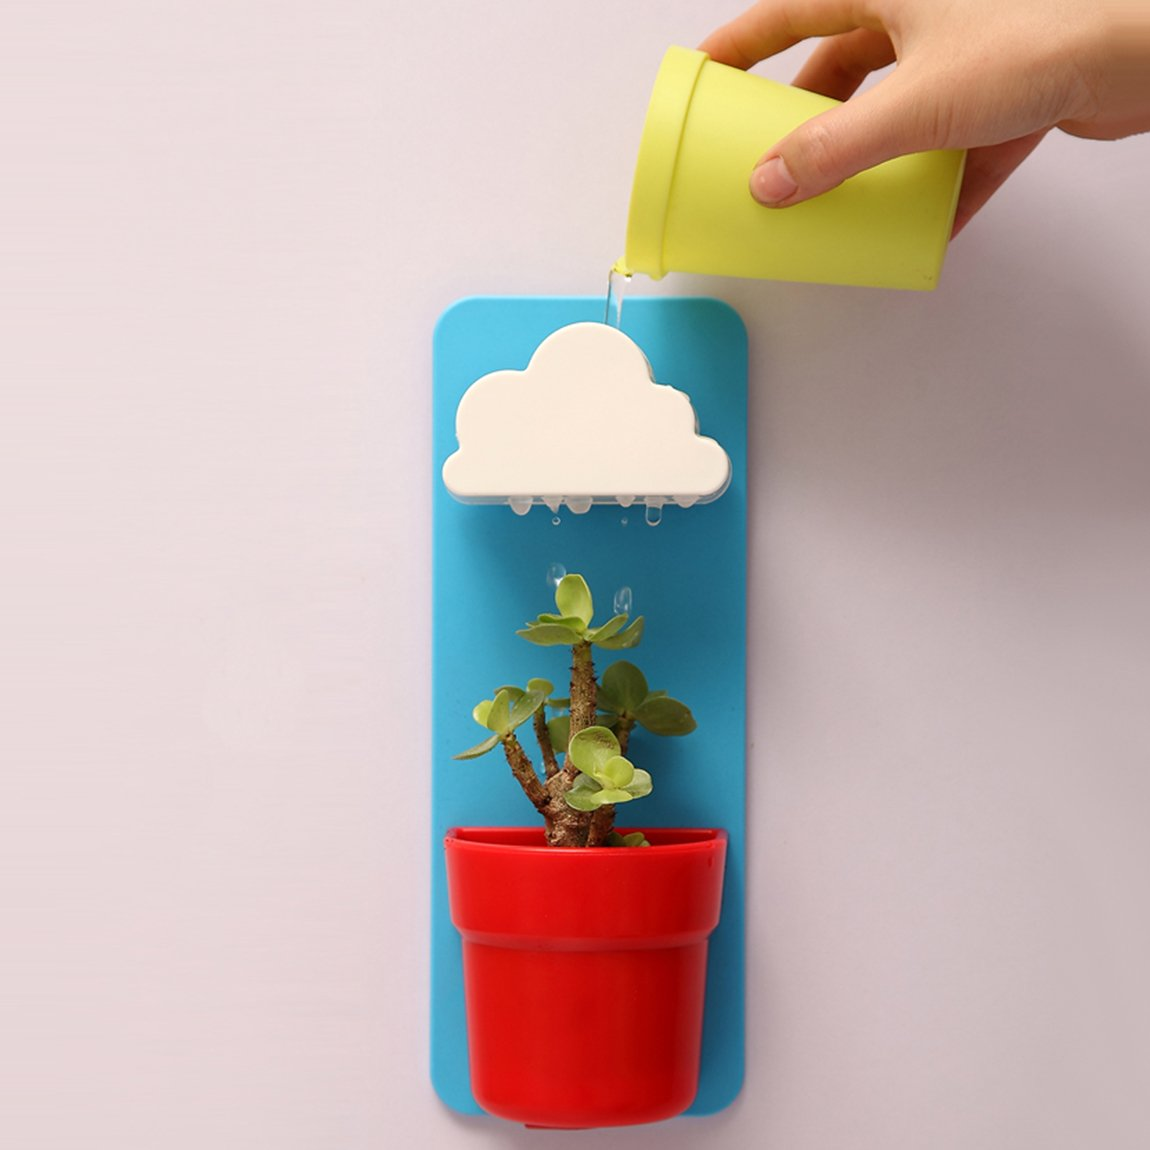 Wall hanging plant pot!